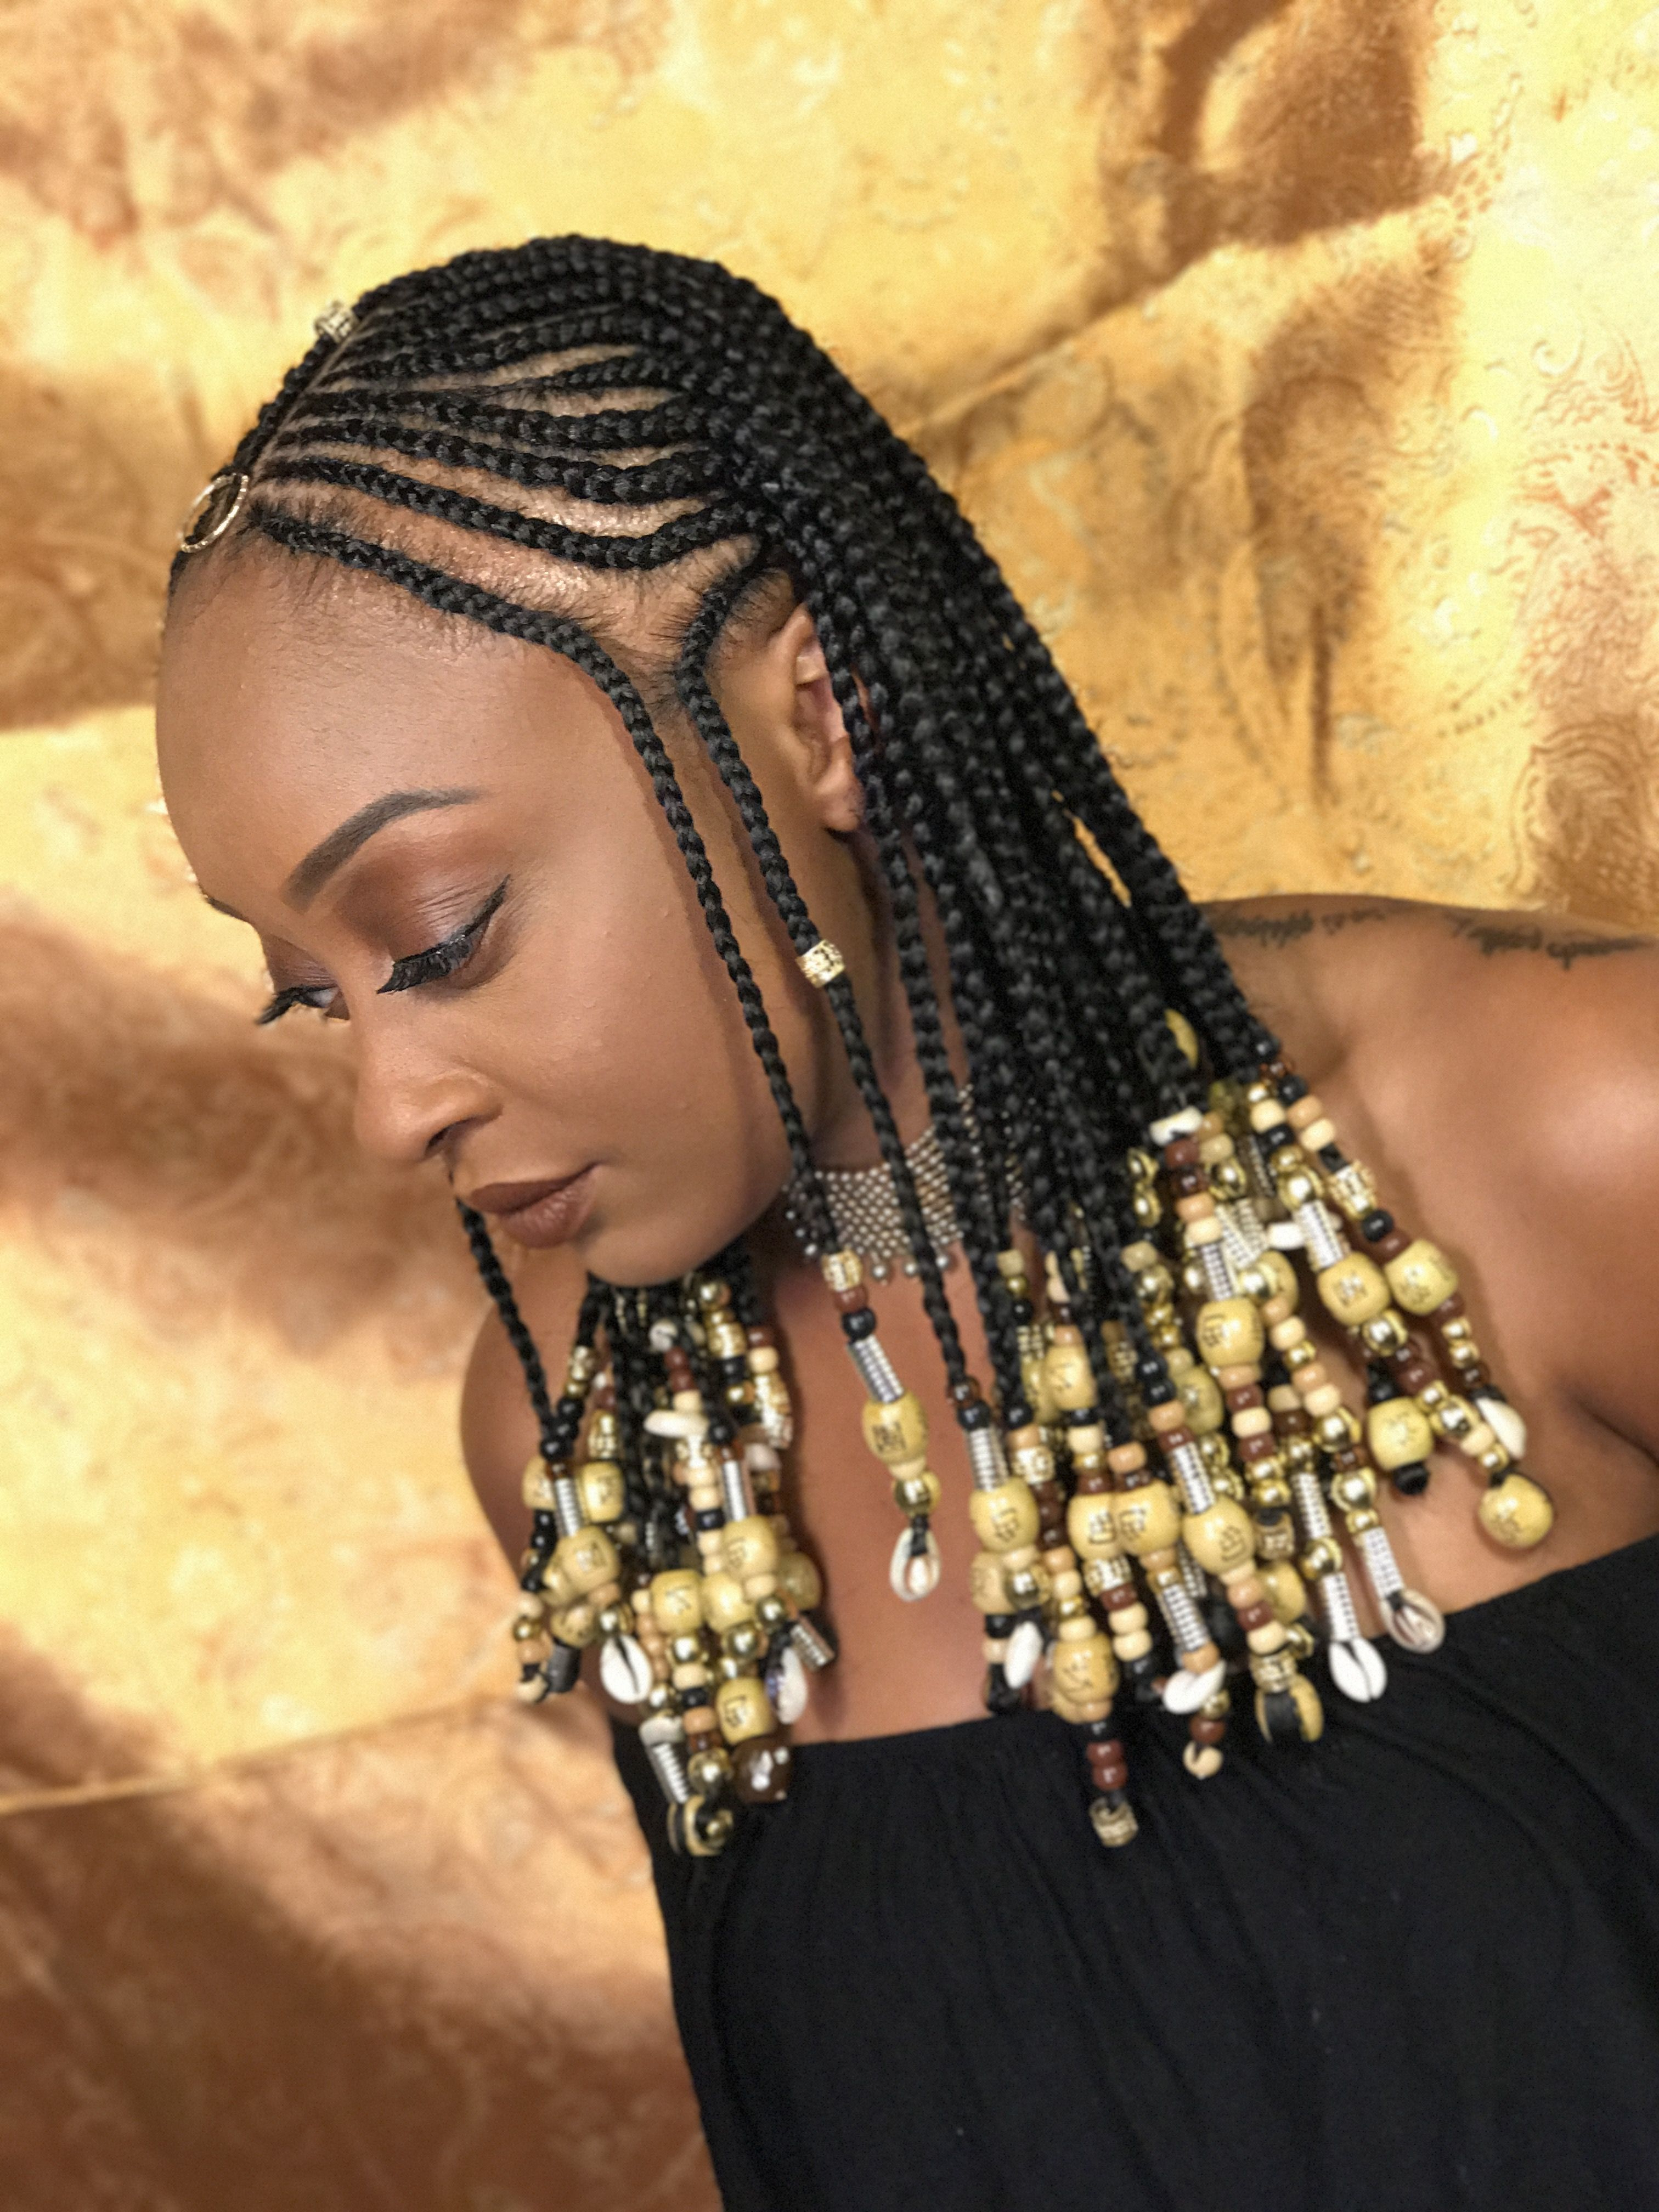 Women Hairstyle : African Hair Braiding Styles Withds Braids Throughout Most Recent Box Braids And Beads Hairstyles (View 12 of 20)